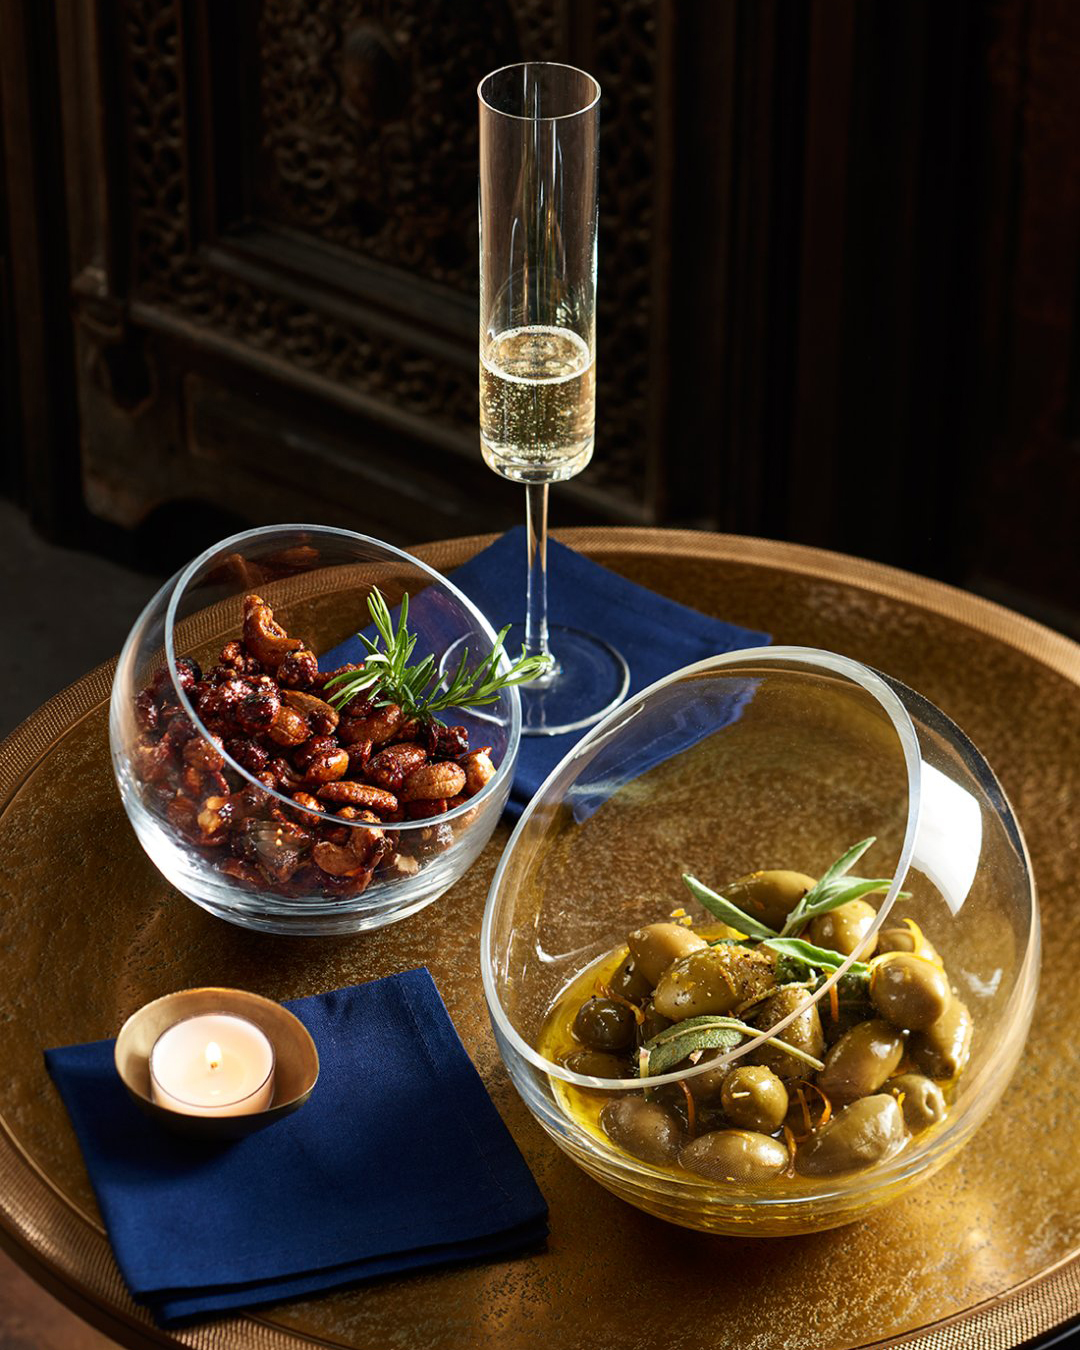 Champagne flute and olives